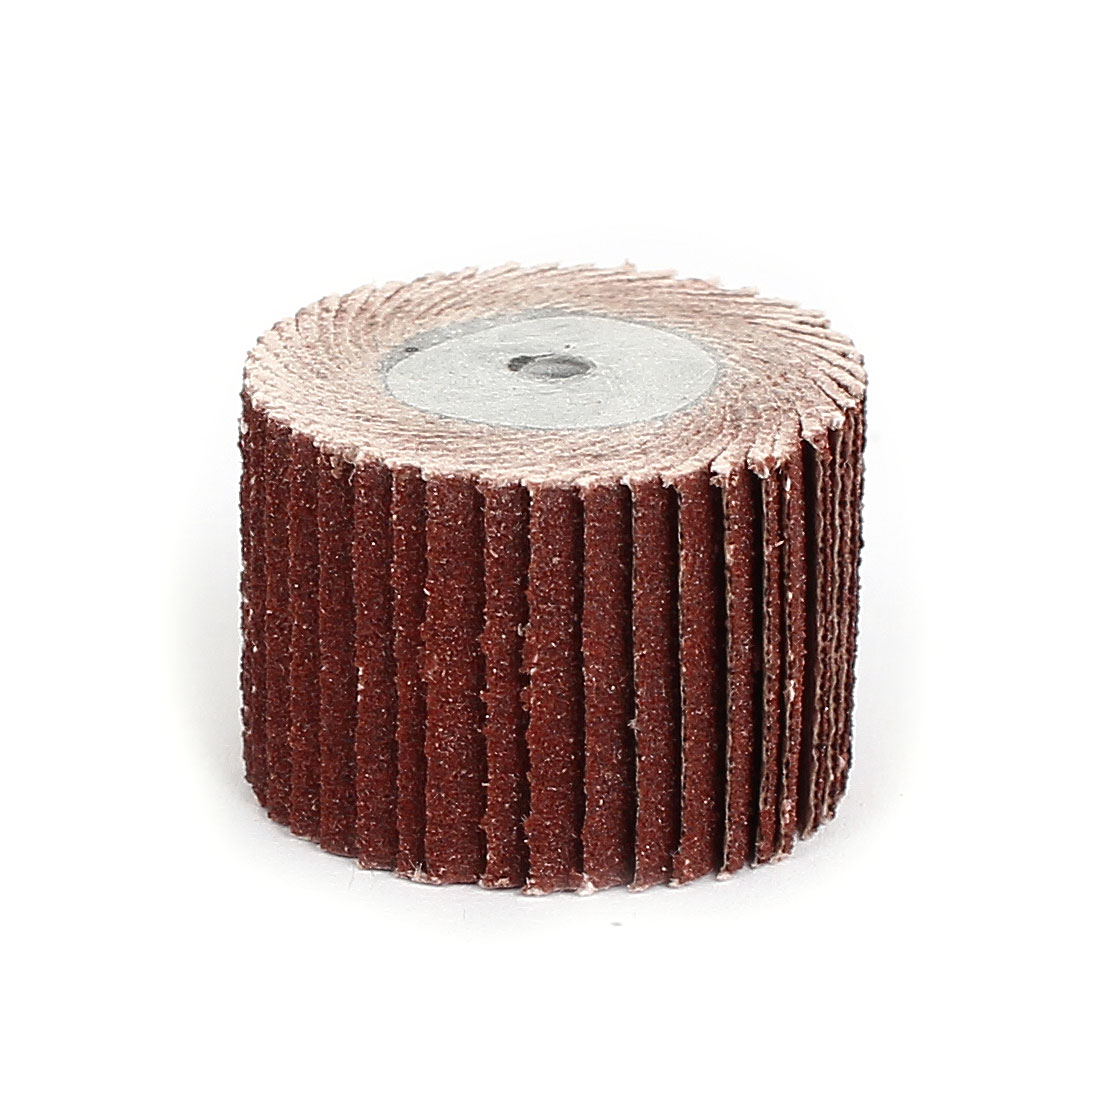 15mm Long Sandpaper Grinding Mounted Point Flap Wheel